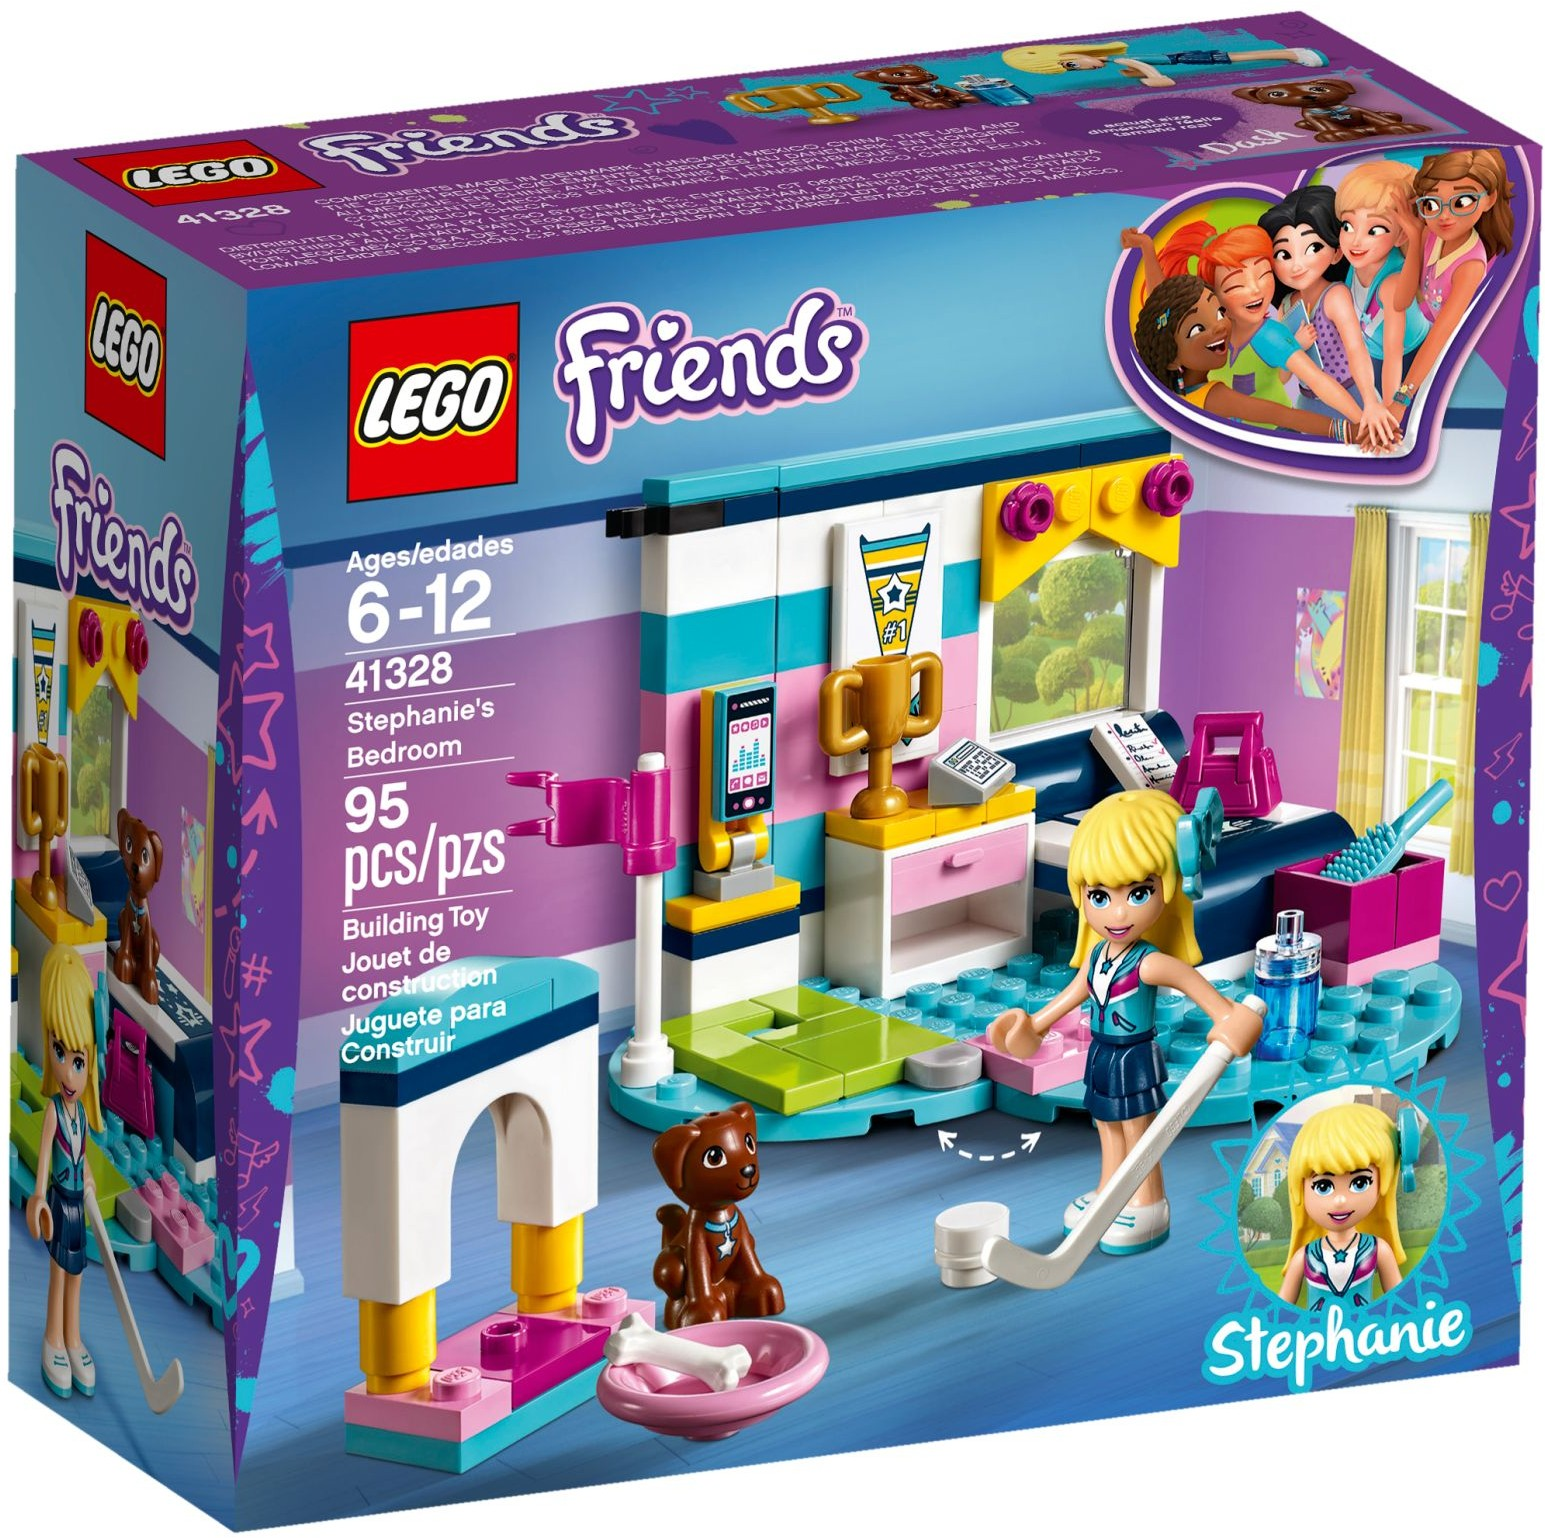 LEGO Friends Sets: 41328 Stephanie's Bedroom NEW